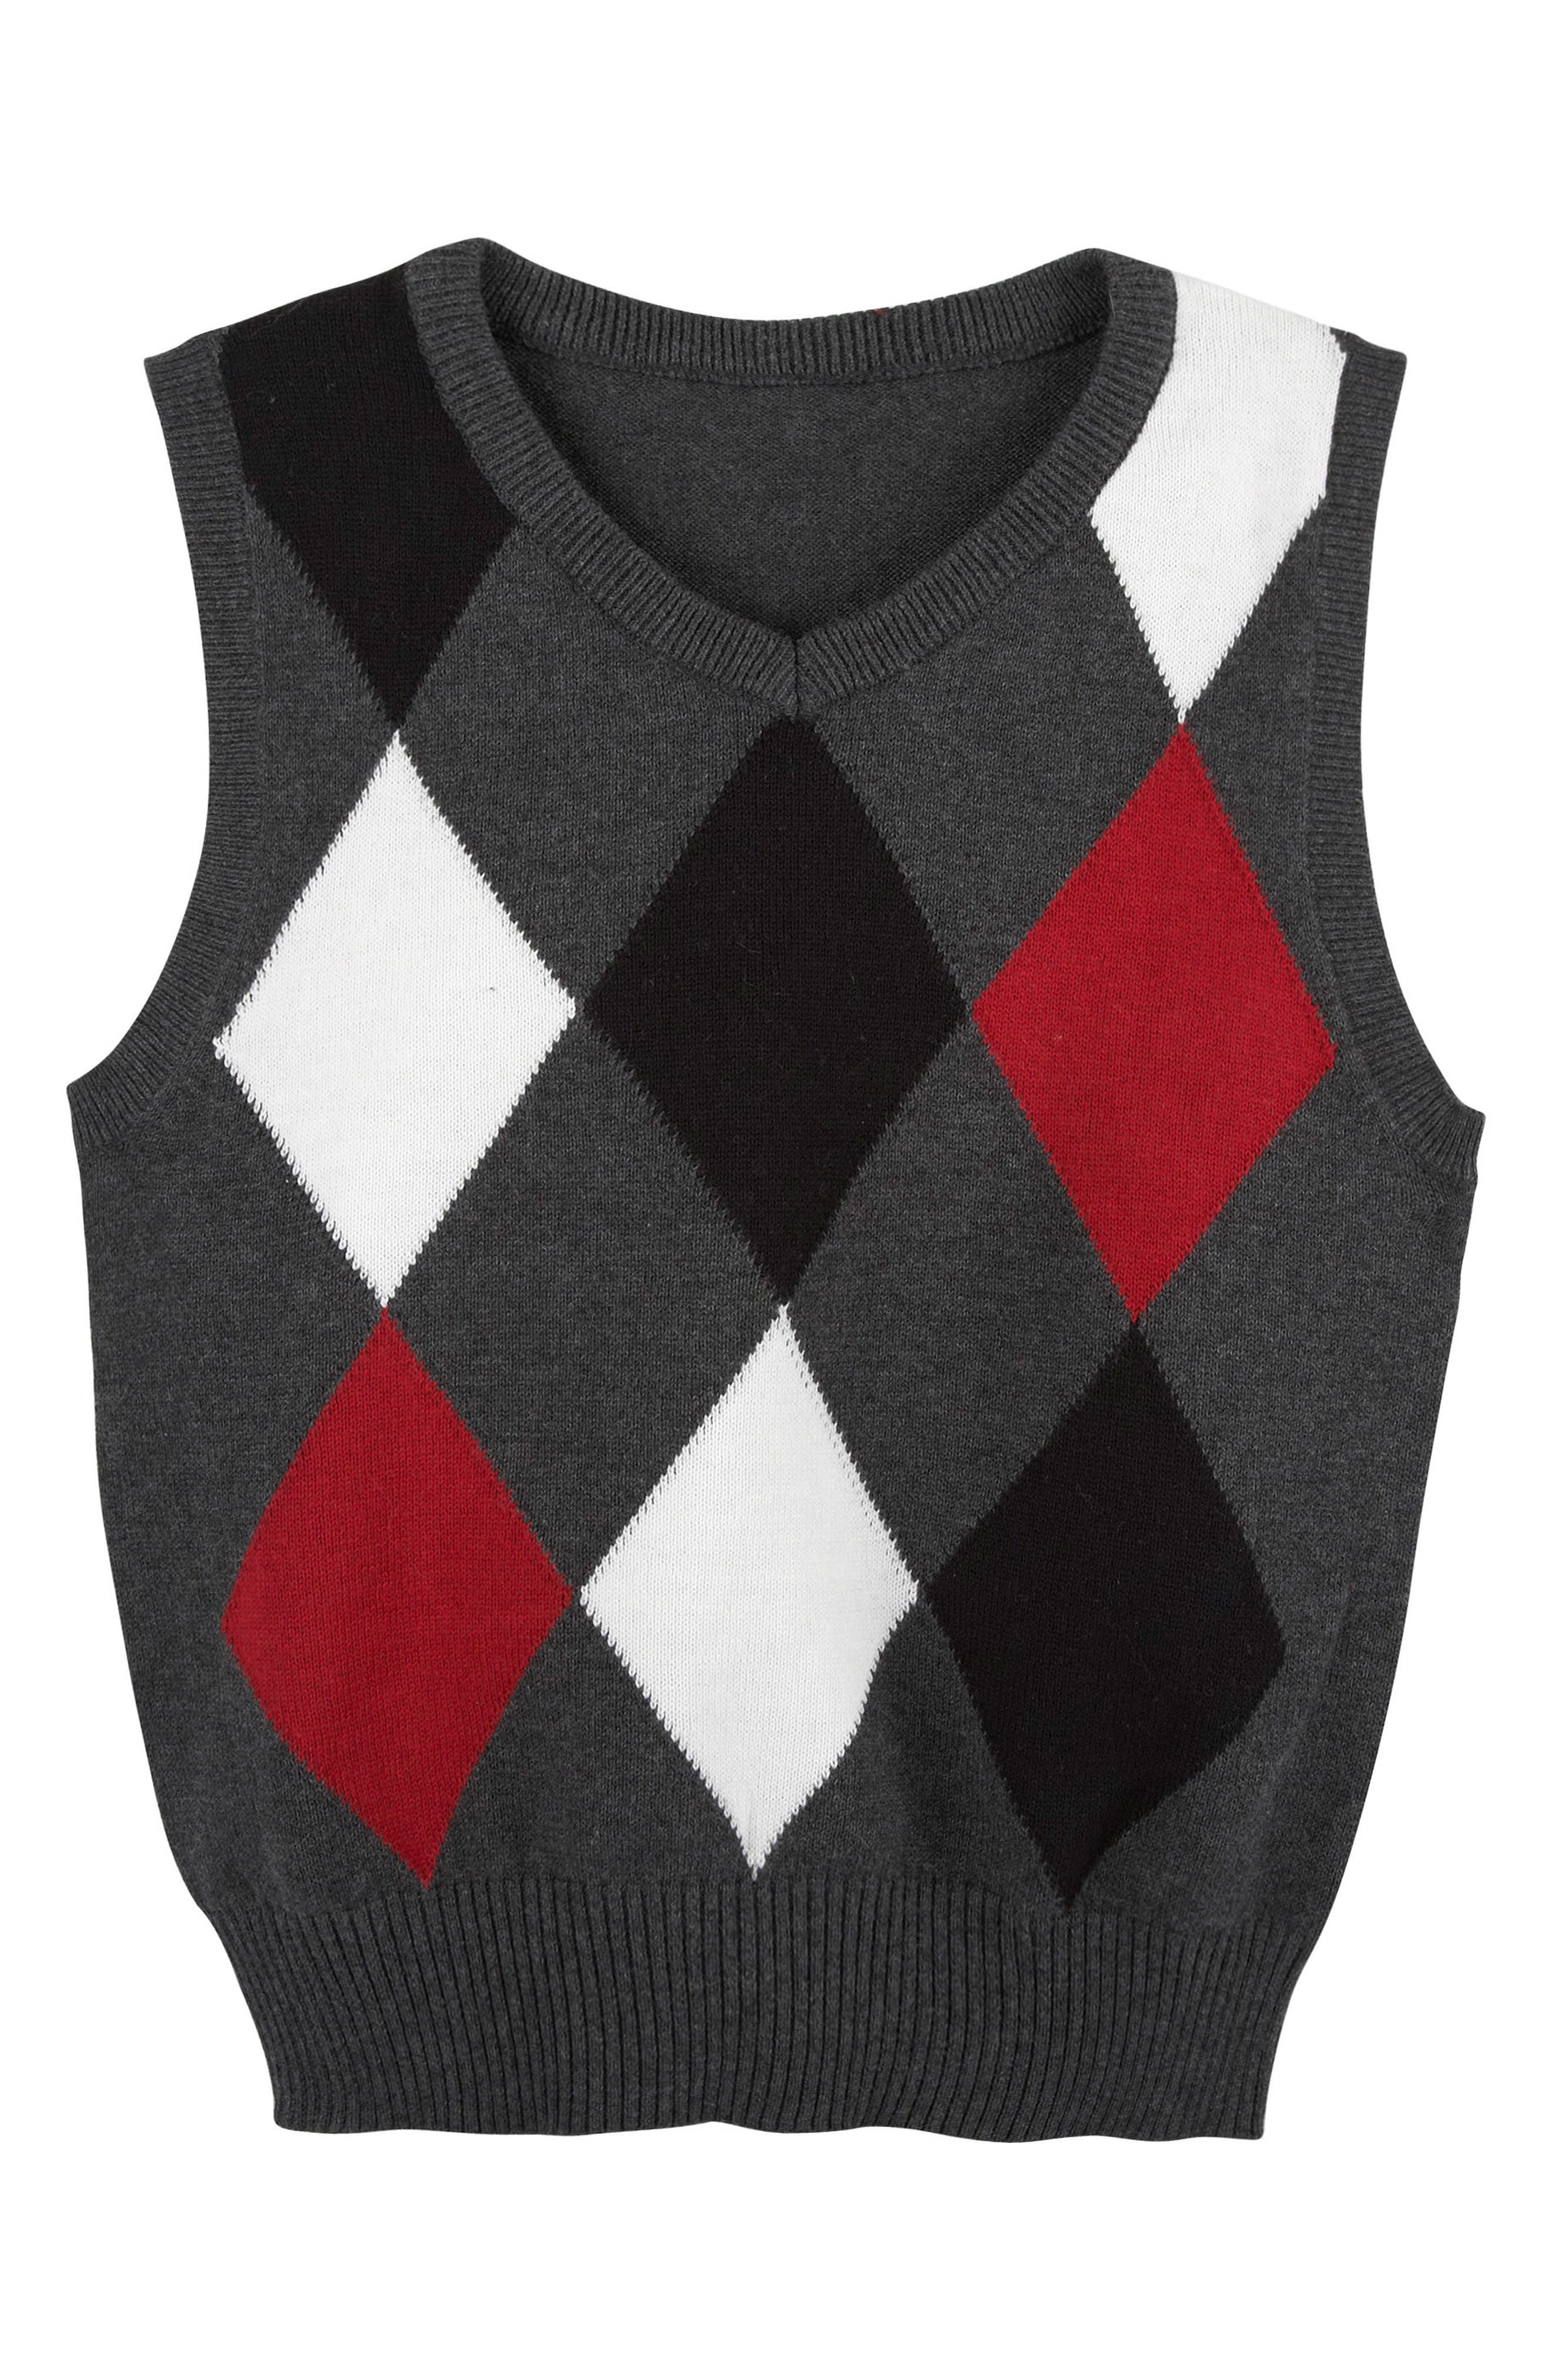 Alternate Image 1 Selected - Andy & Evan Argyle Sweater Vest (Baby Boys)